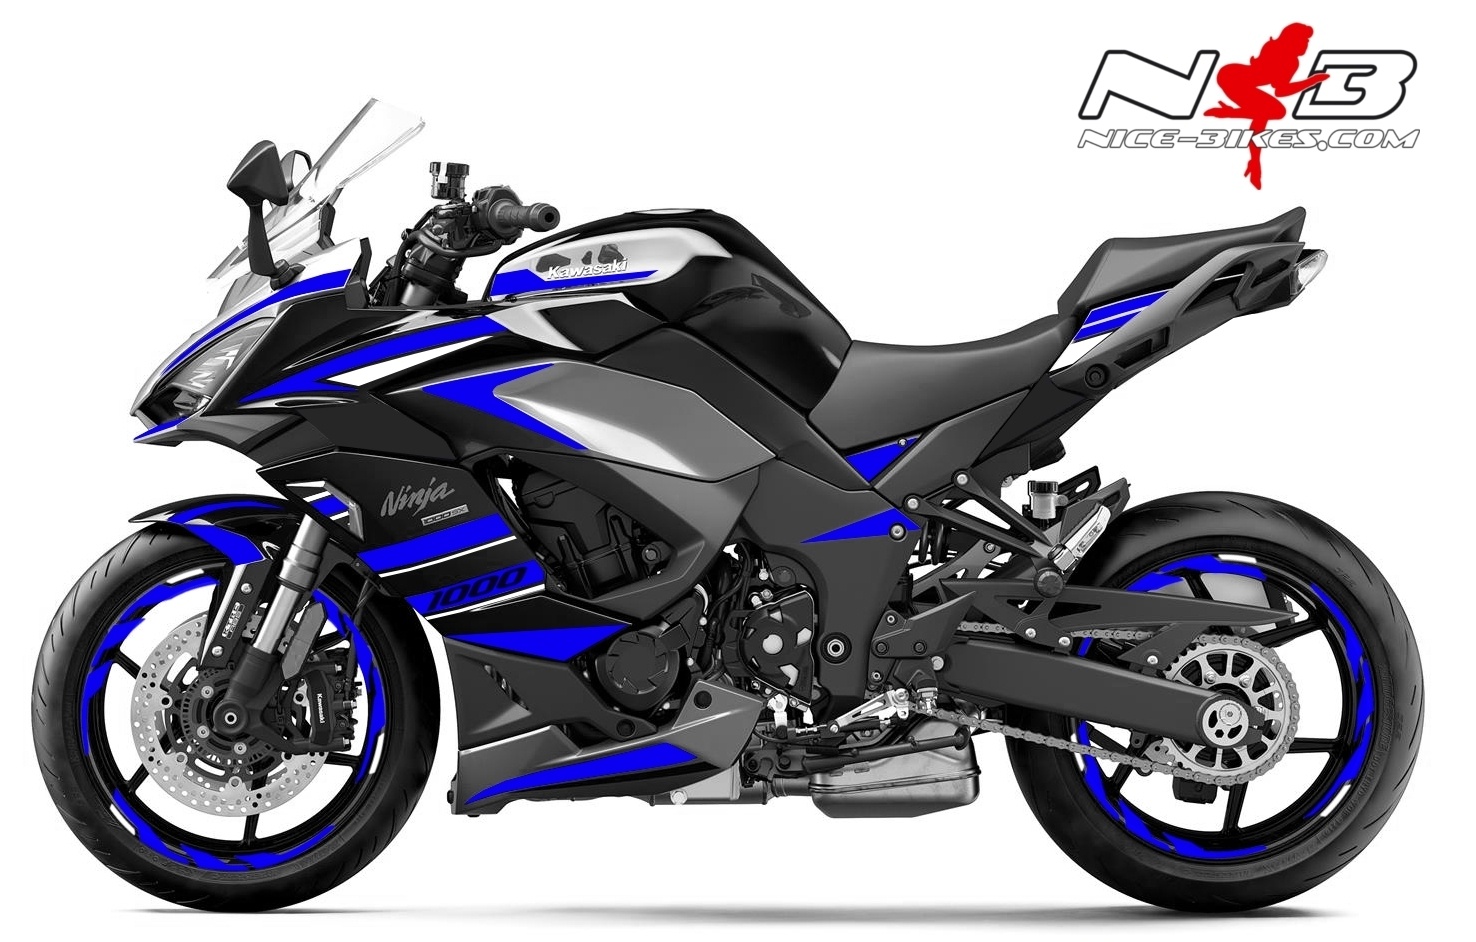 Foliendesign Kawasaki Z1000SX Racing Blue